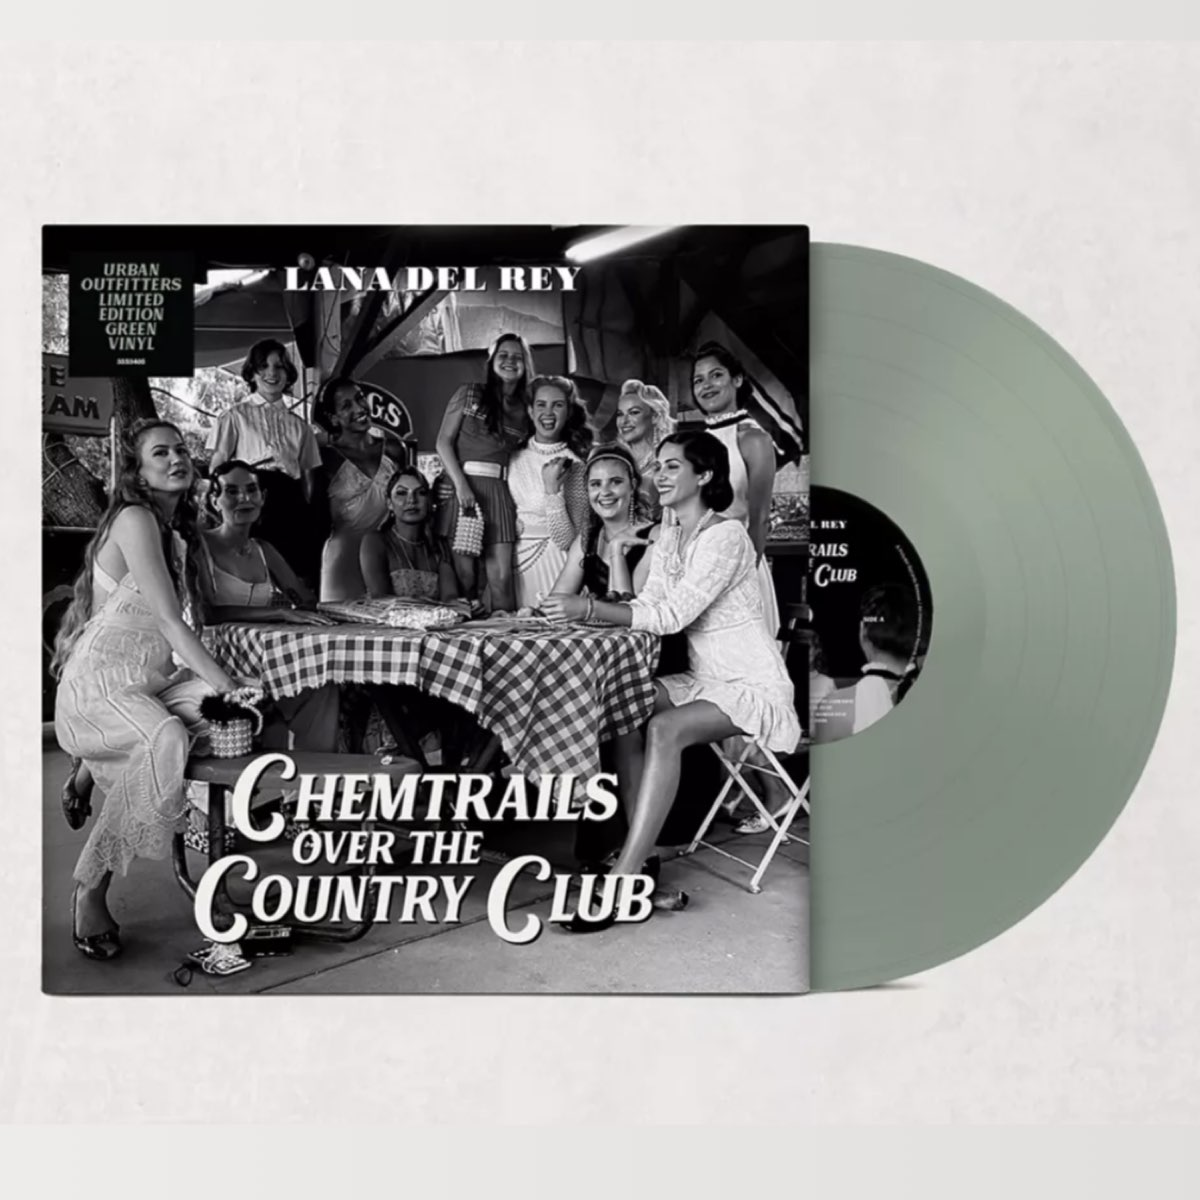 Lana Del Rey - Chemtrails Over the Country Club [Green Vinyl - Urban Outfitters Exclusive]